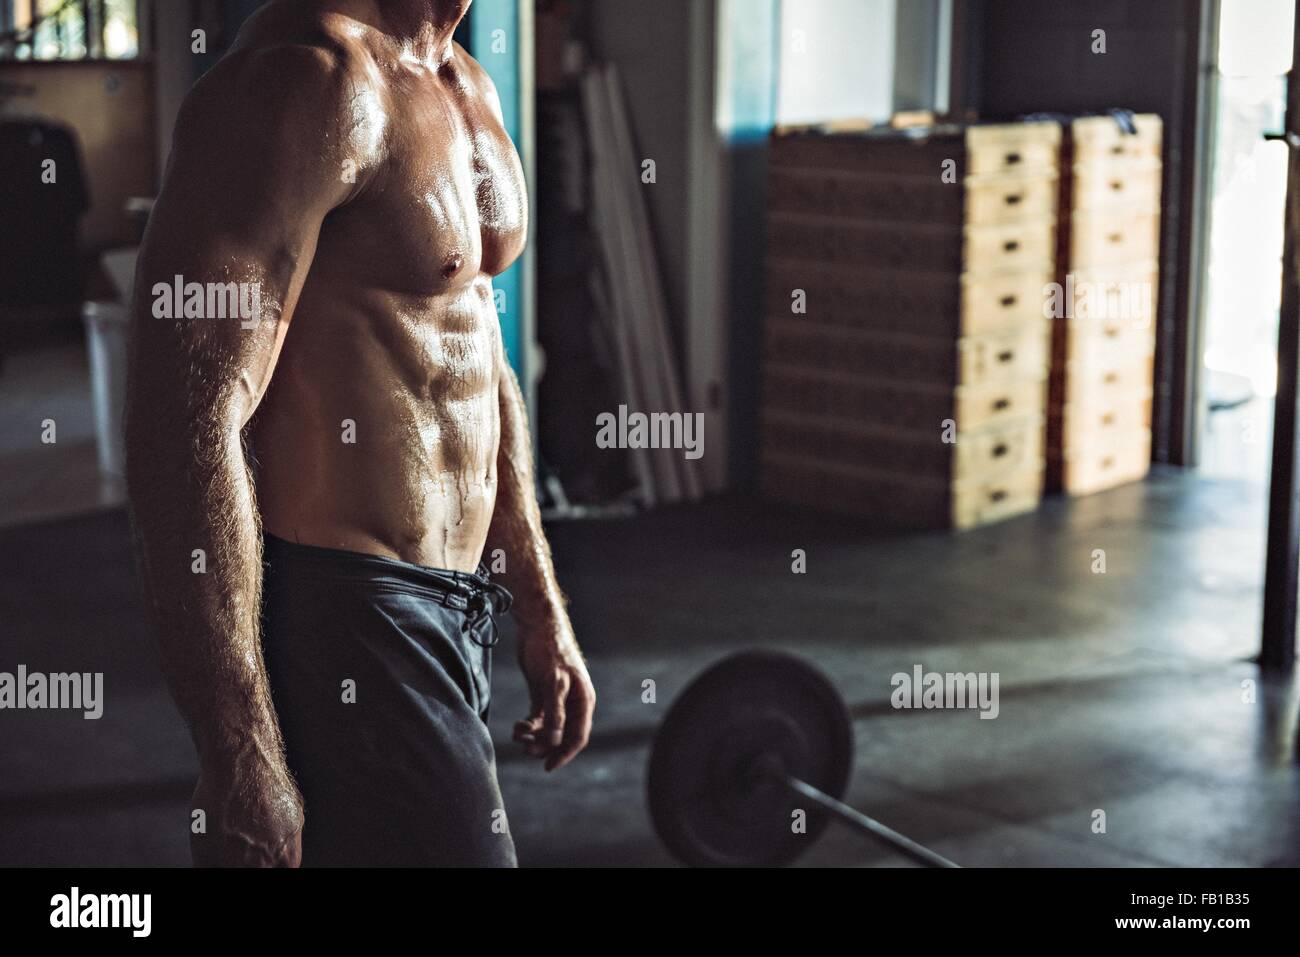 Cropped view of muscular man in gym - Stock Image